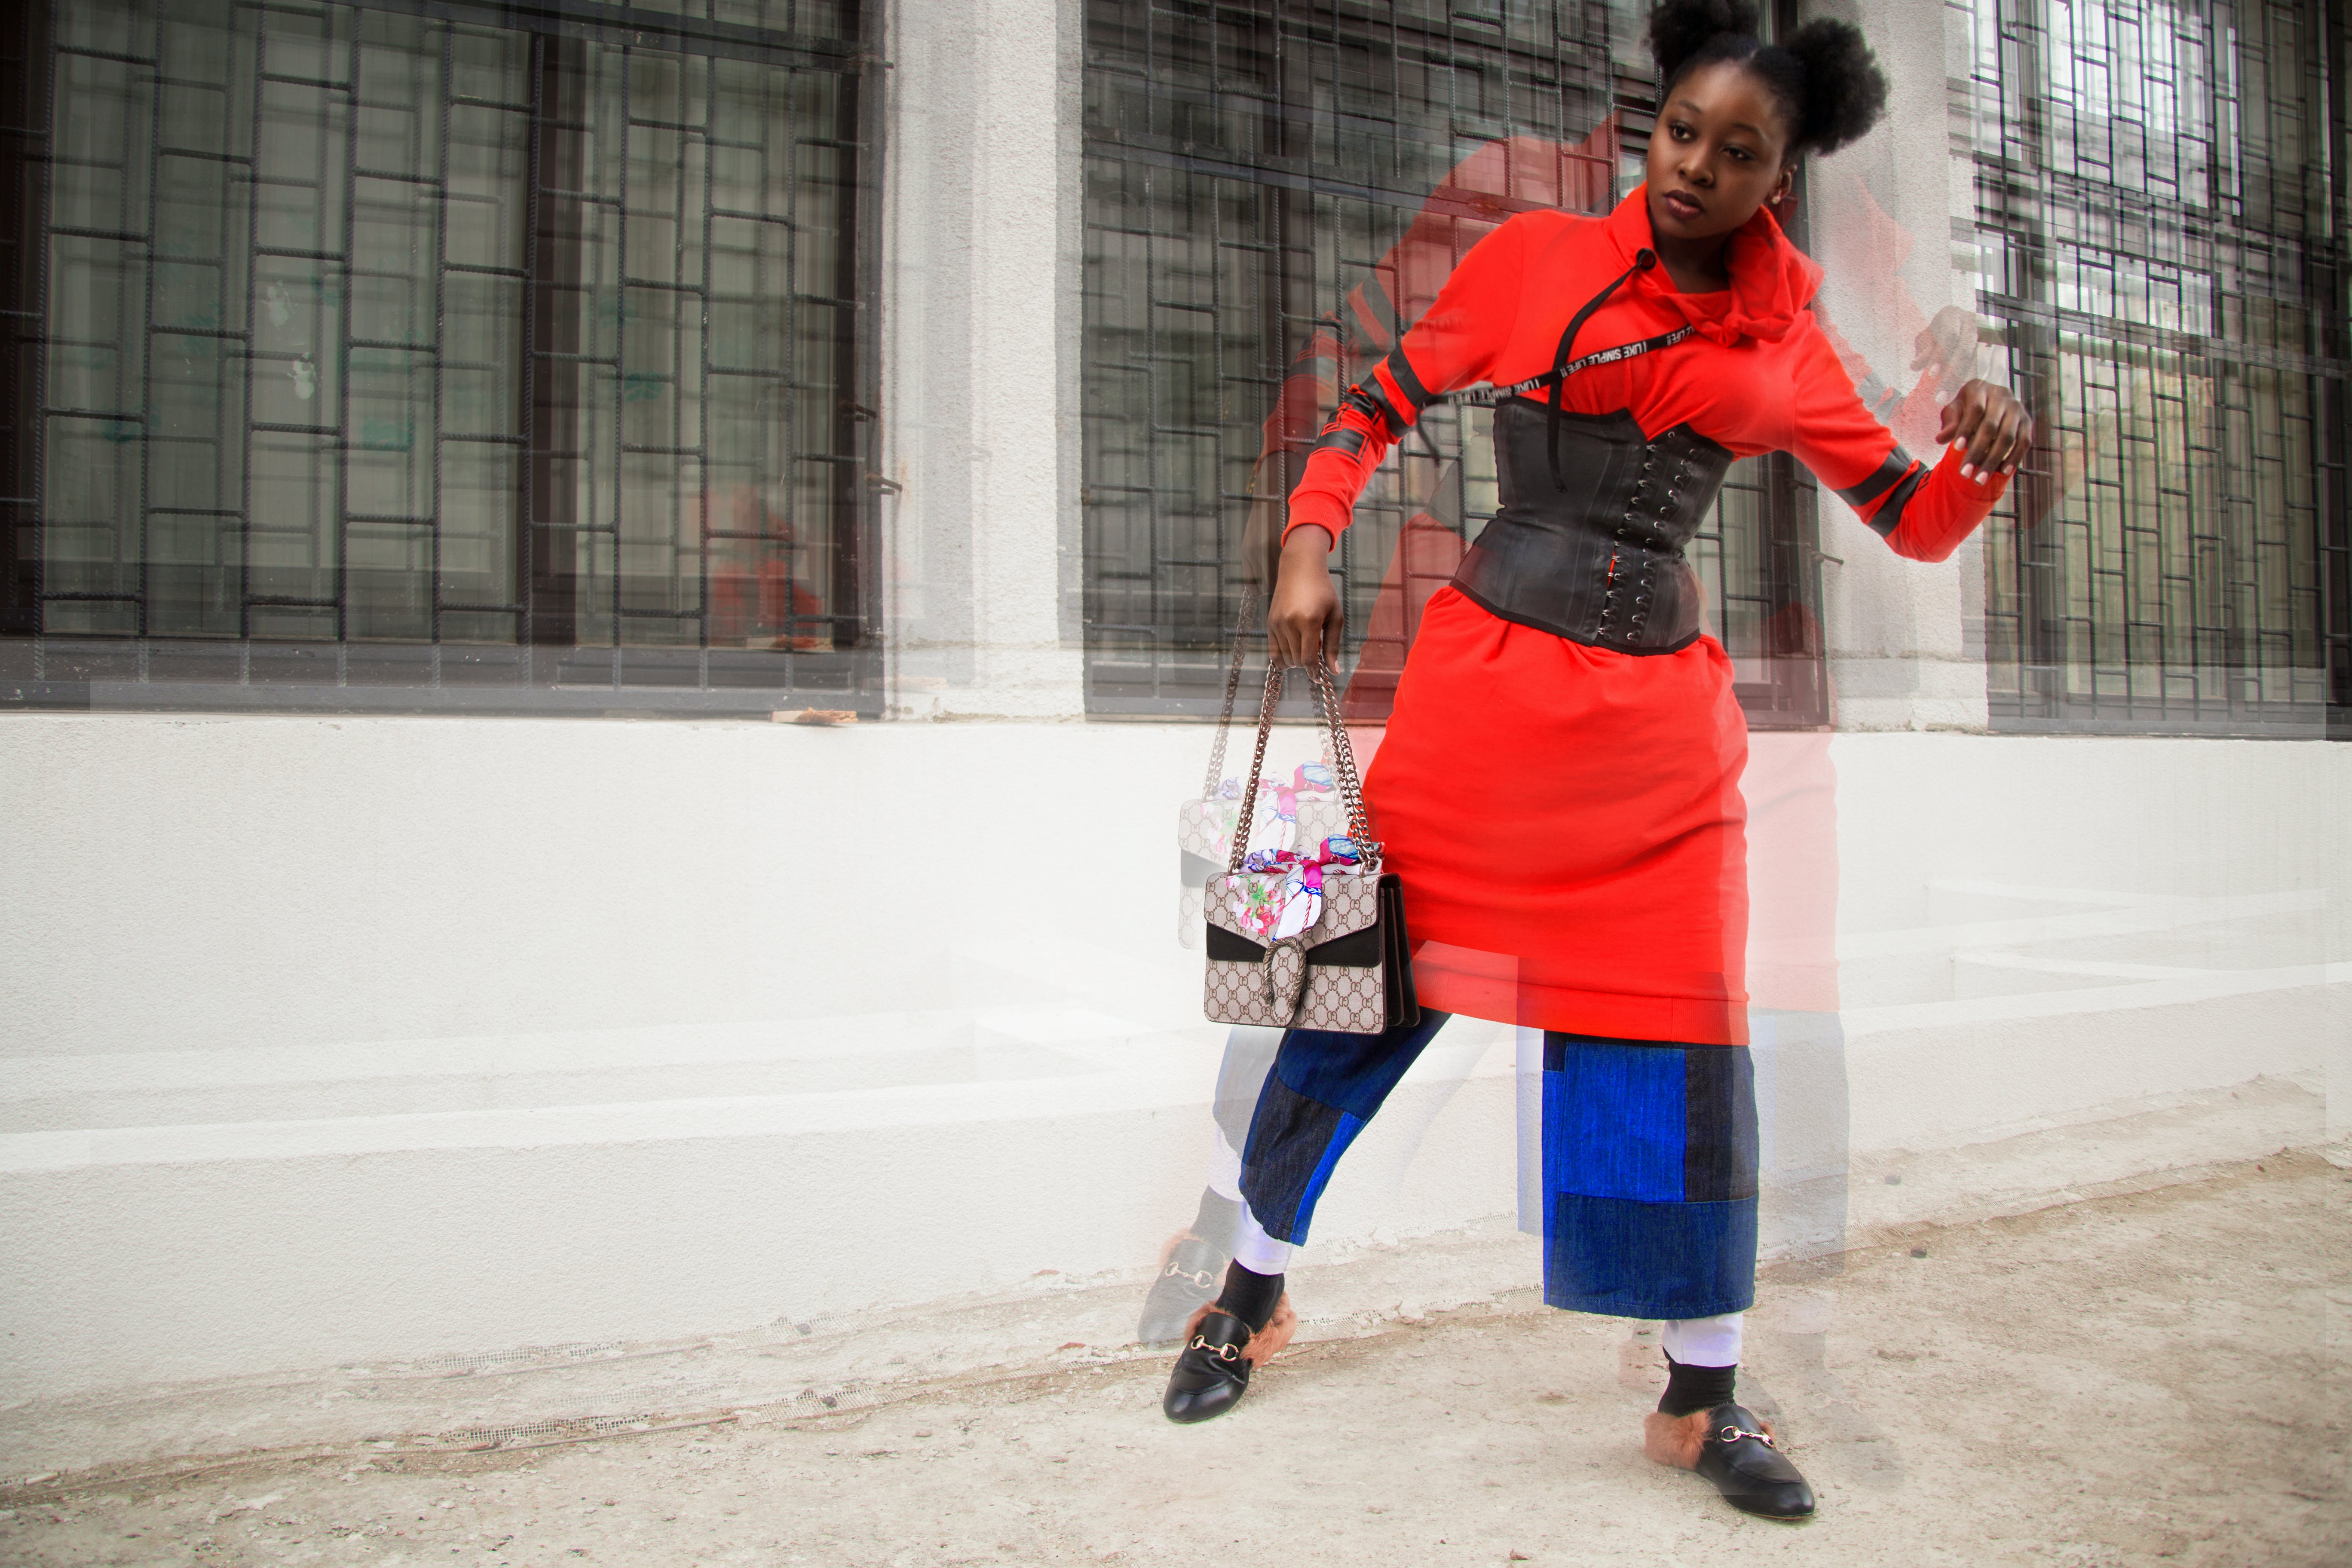 Woman in Red and Multicolored Shirt Dress Holding Bag